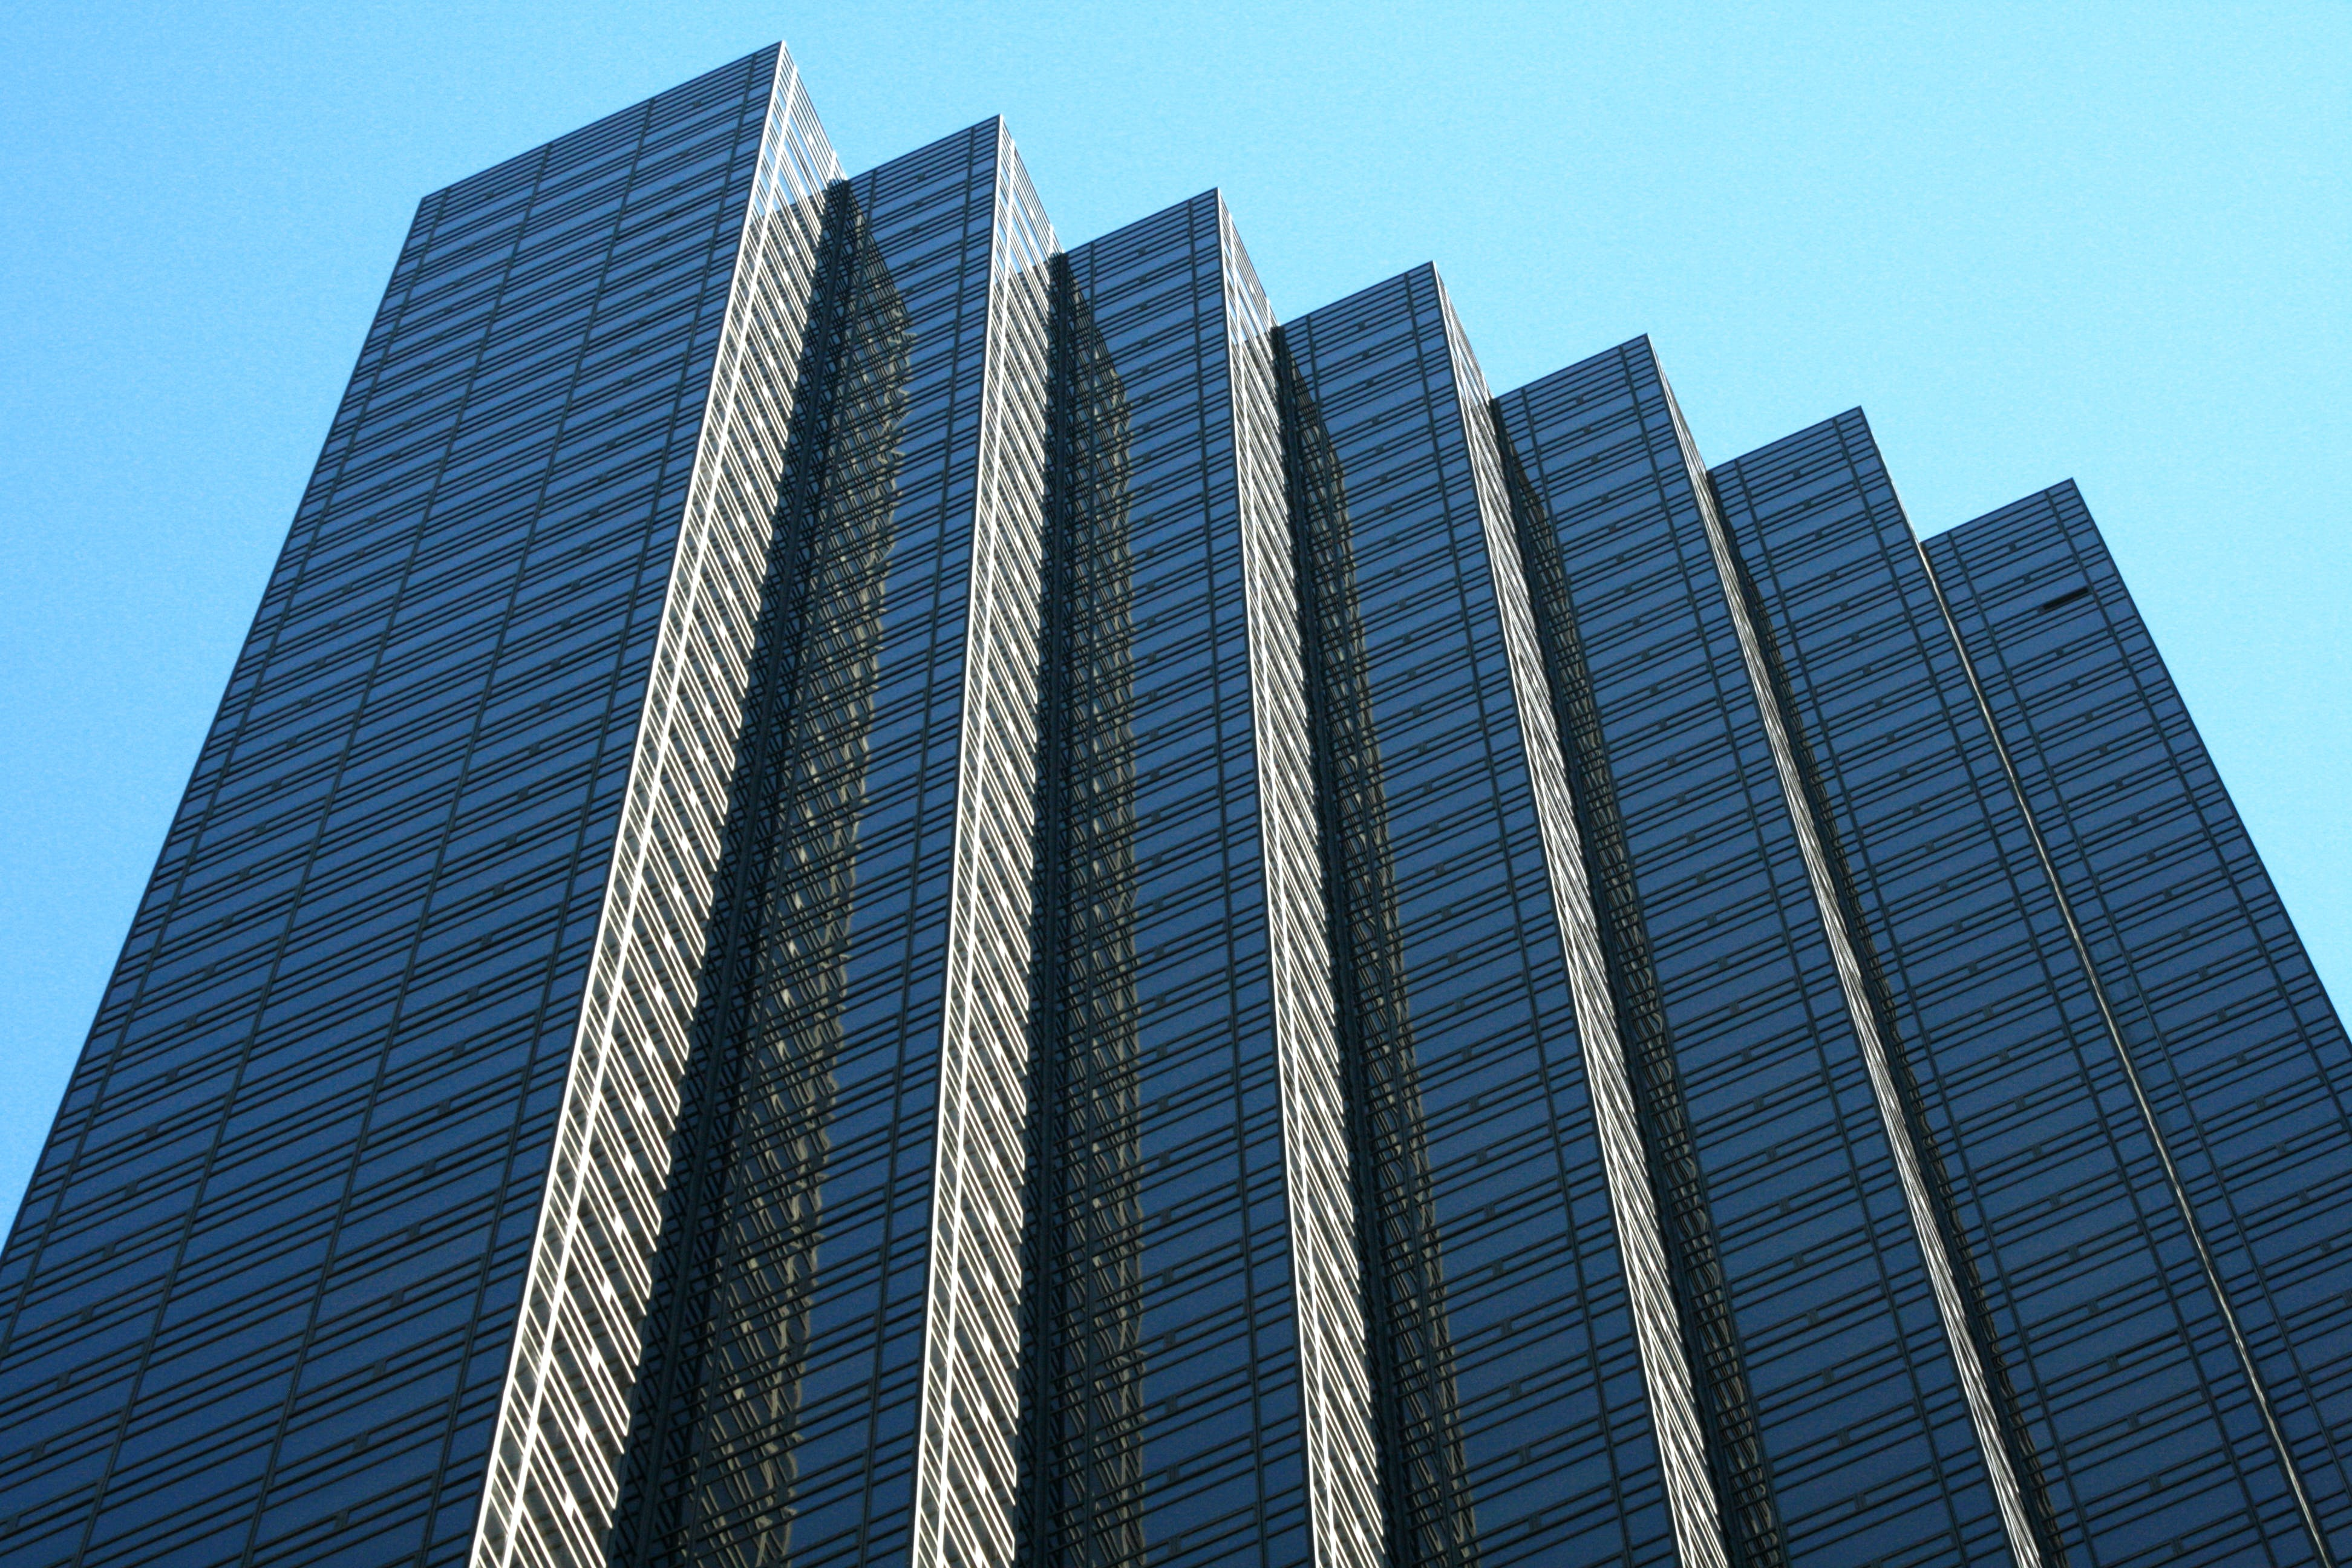 Low-angle Photograph of High-rise Building